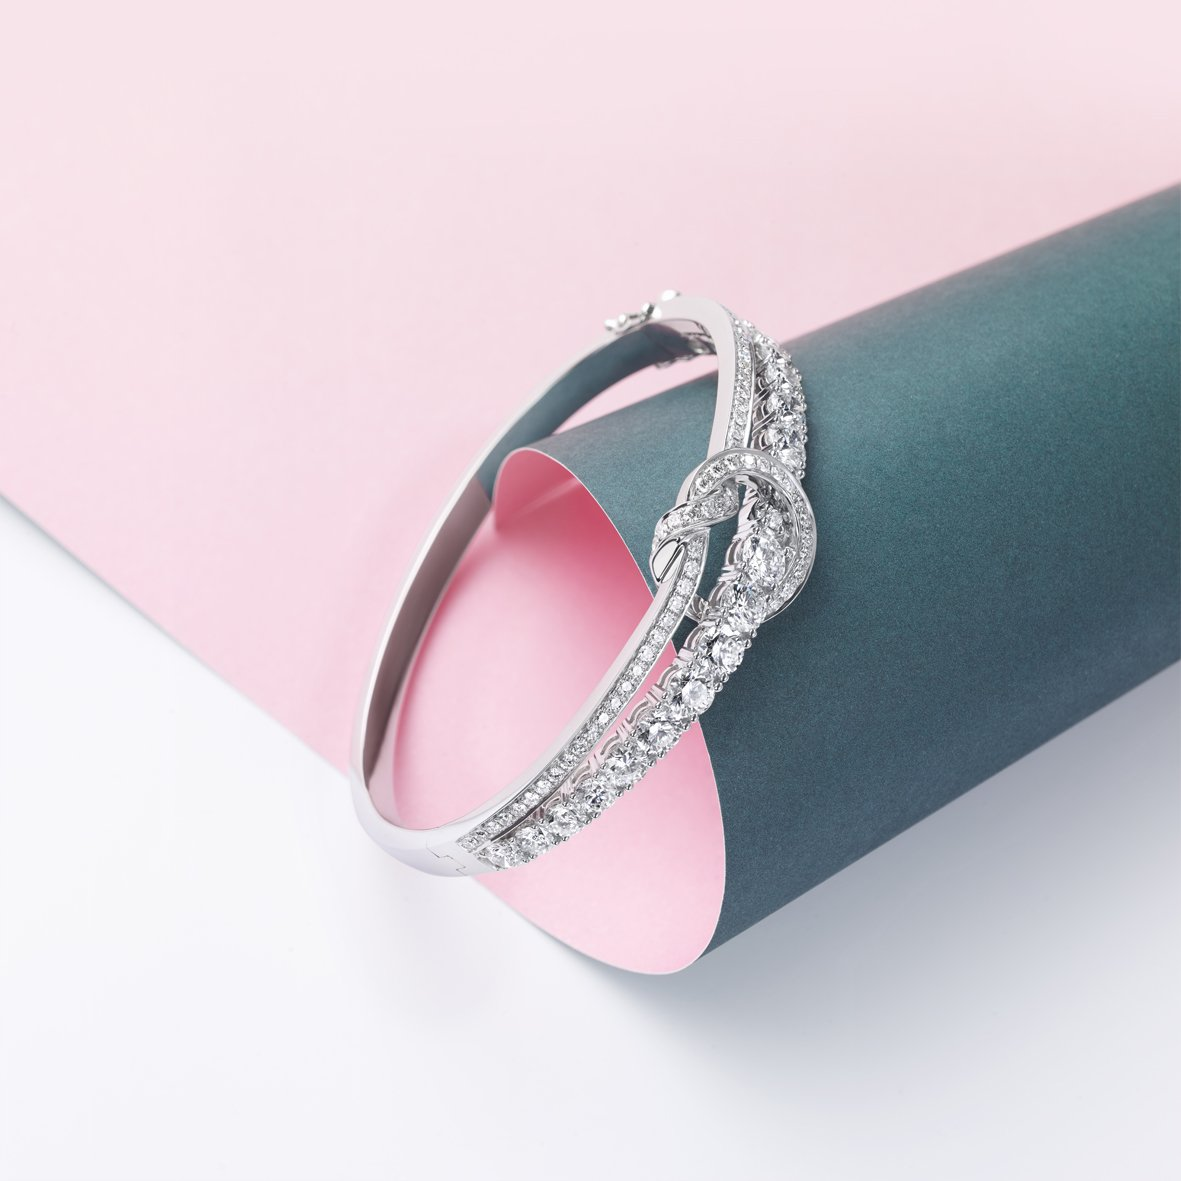 Boodles On Twitter A Sailorsknot Is An Enduring Bond Of Unparalleled Strength The Knot Bangle By Boodles Is A Timeless Expression Of Everlasting Love Https T Co T33hayzssr